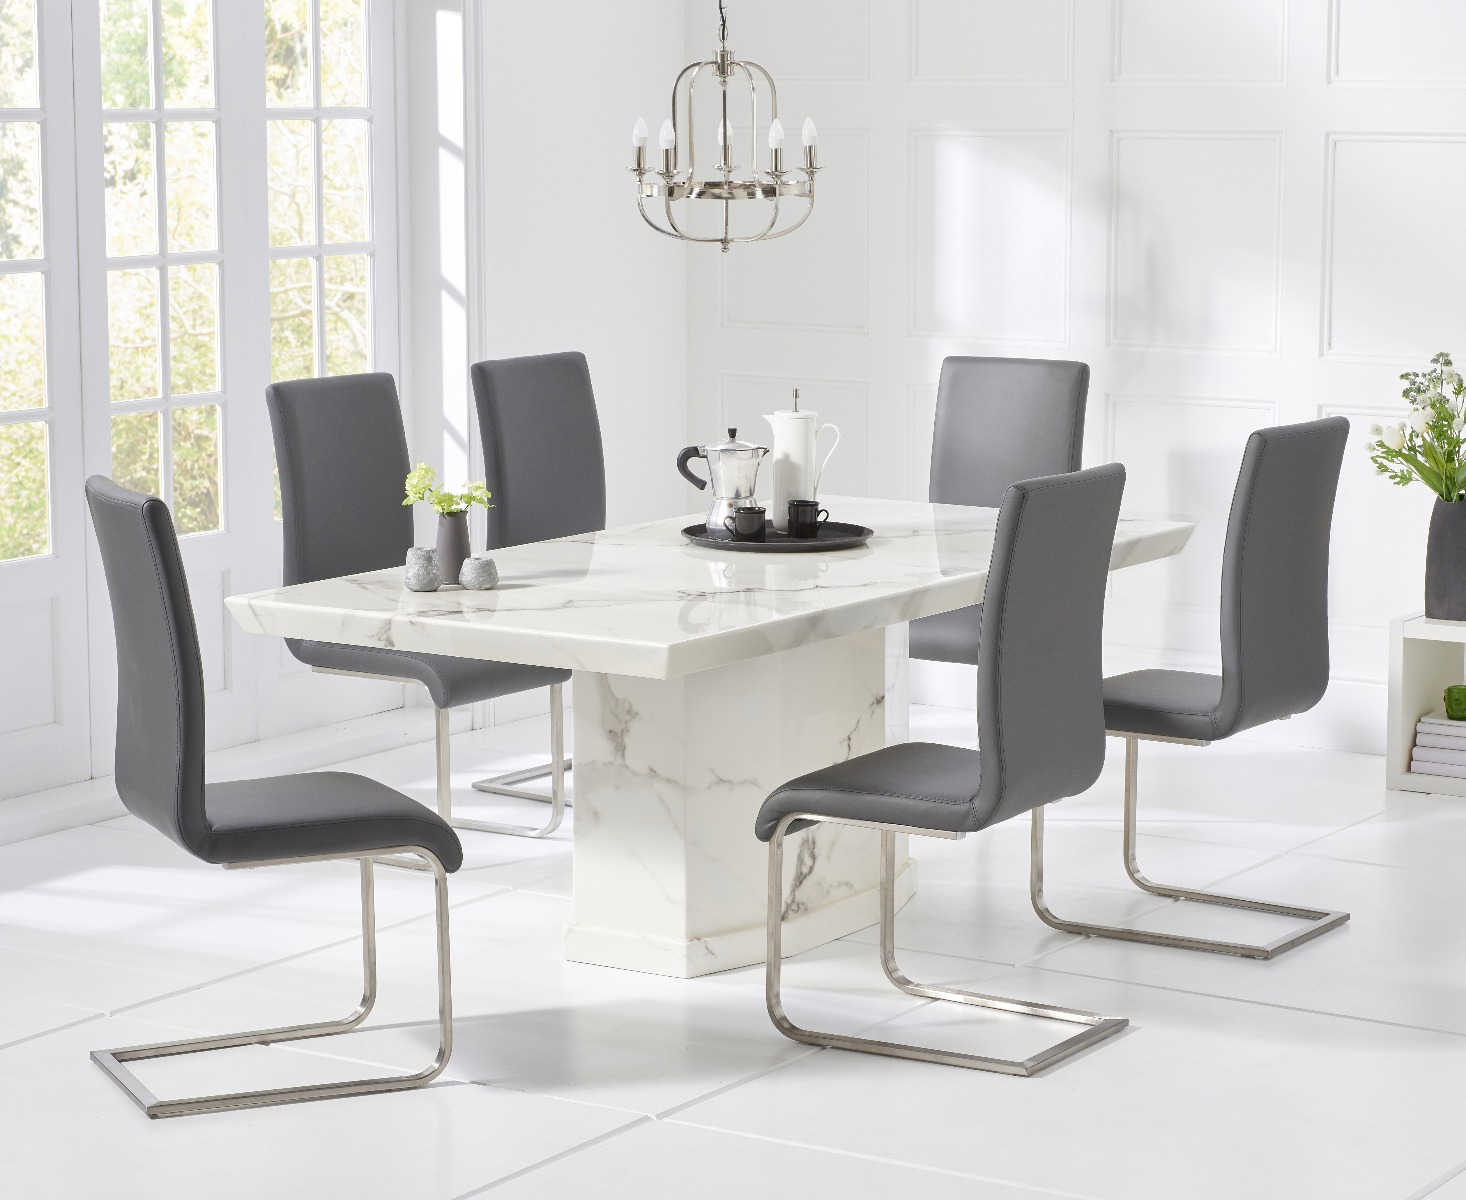 Outstanding Carvelle 200Cm White Pedestal Marble Dining Table With Malaga Chairs Ncnpc Chair Design For Home Ncnpcorg